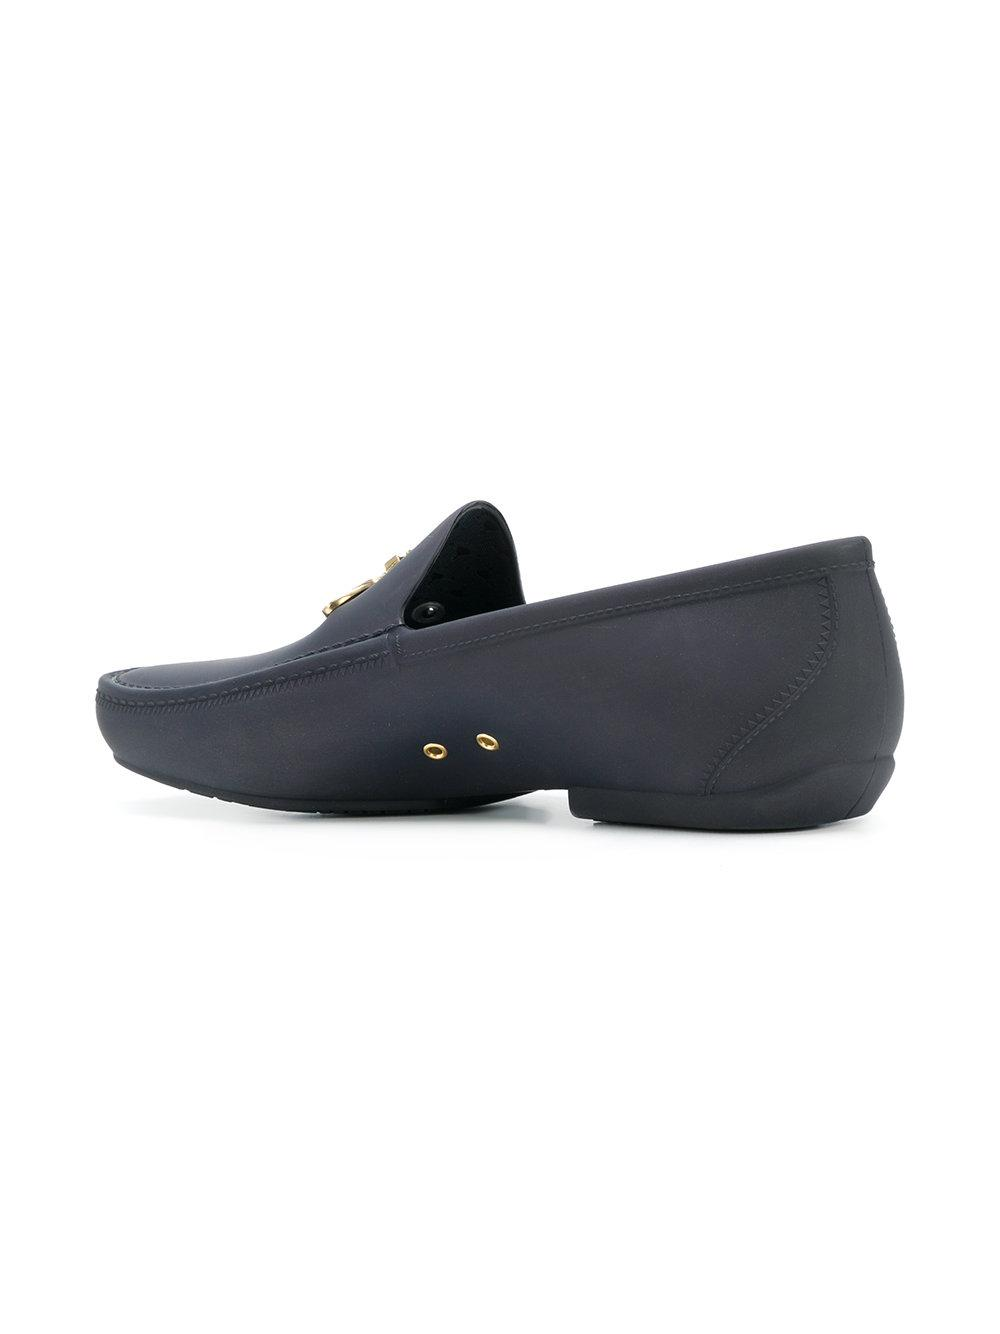 front logo loafers - Blue Vivienne Westwood Cheap Finishline Outlet Purchase l7f0Pdhdfd